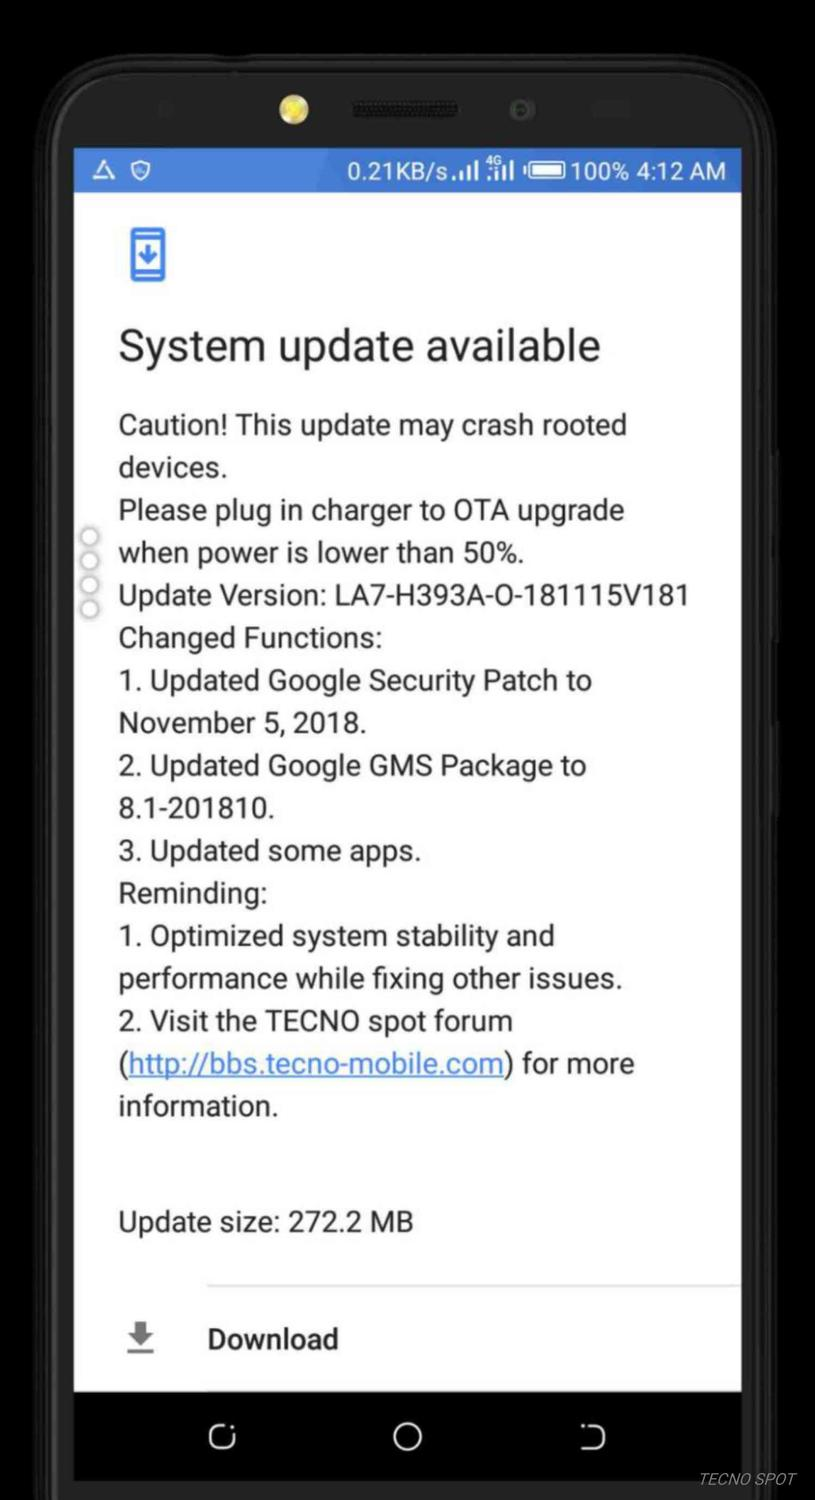 New update - TECNO MOBILE COMMUNITY OFFICIAL FORUM